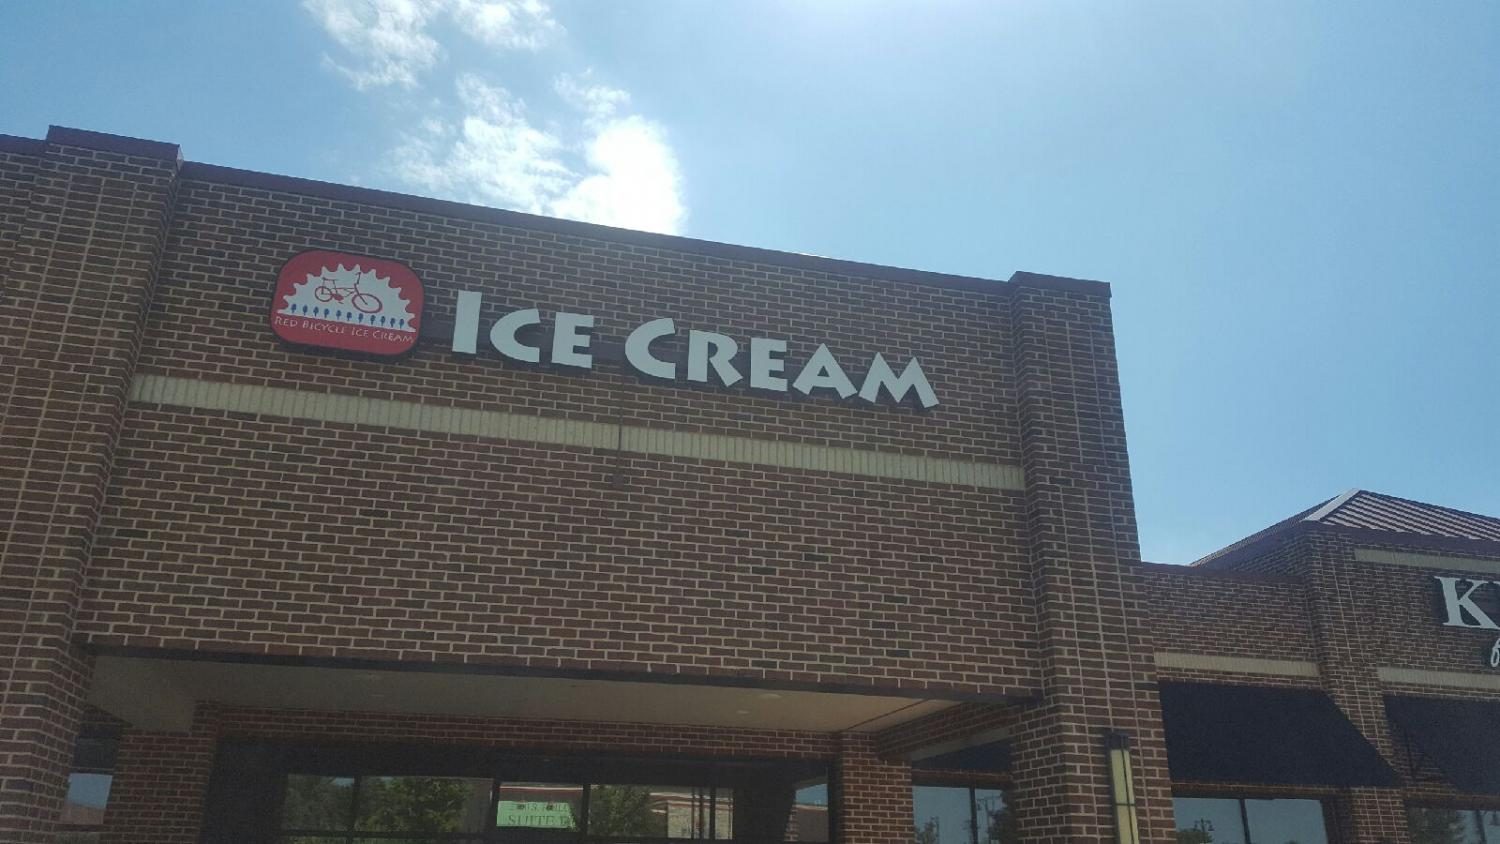 Red Bicycle Ice Cream opened in Urbana on Independence Day. Using cream from a local farm, locals will have over 16 ice cream flavors to choose from.